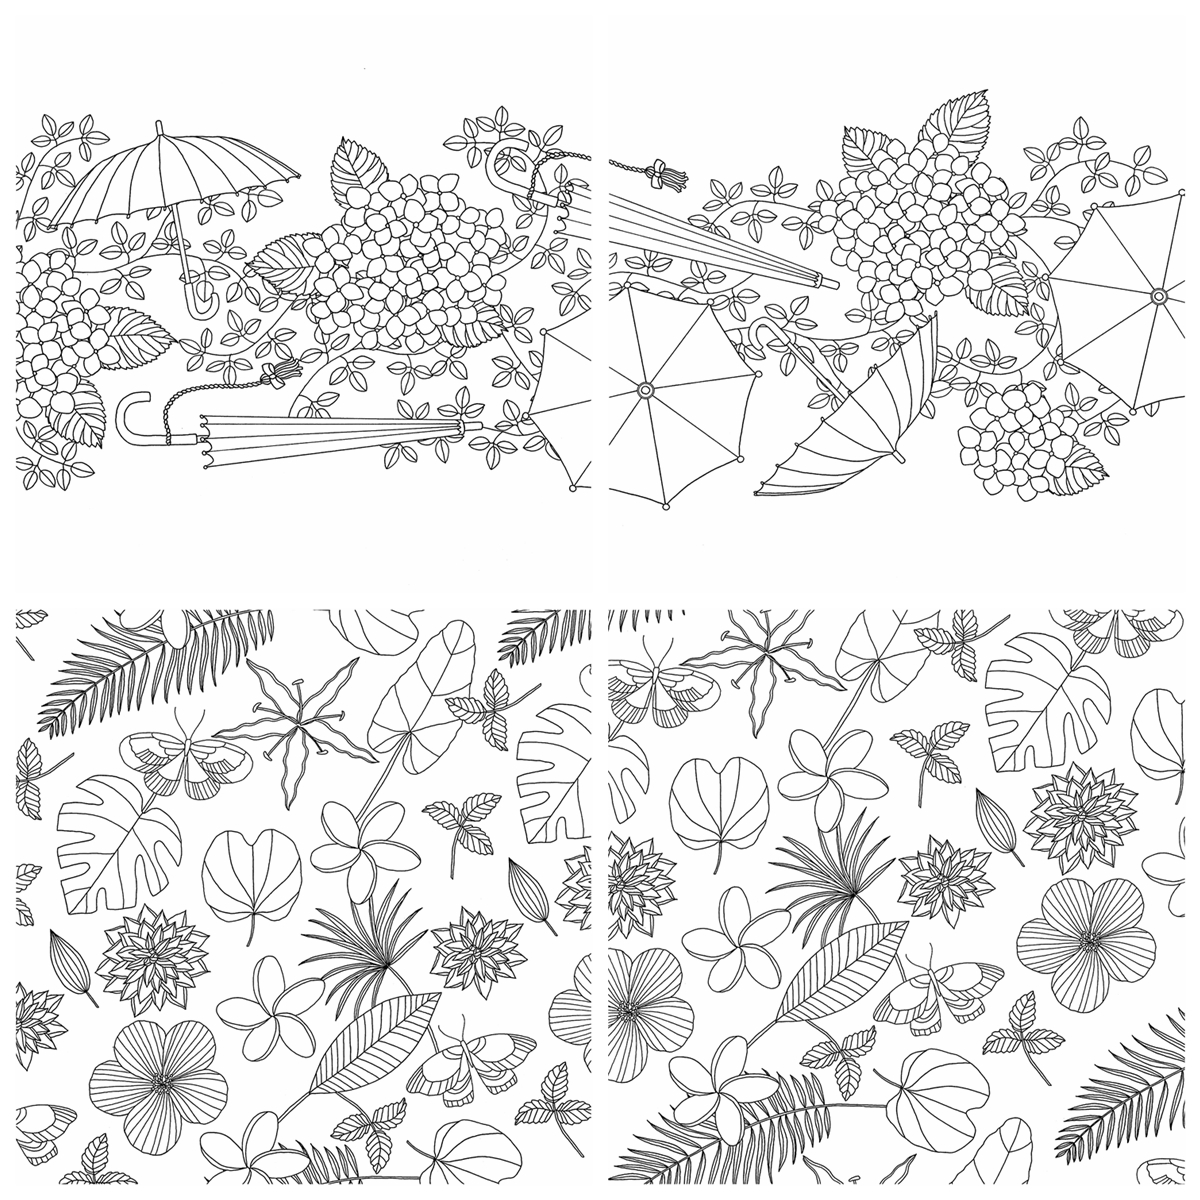 Four Seasons Coloring Book Kayliebooks